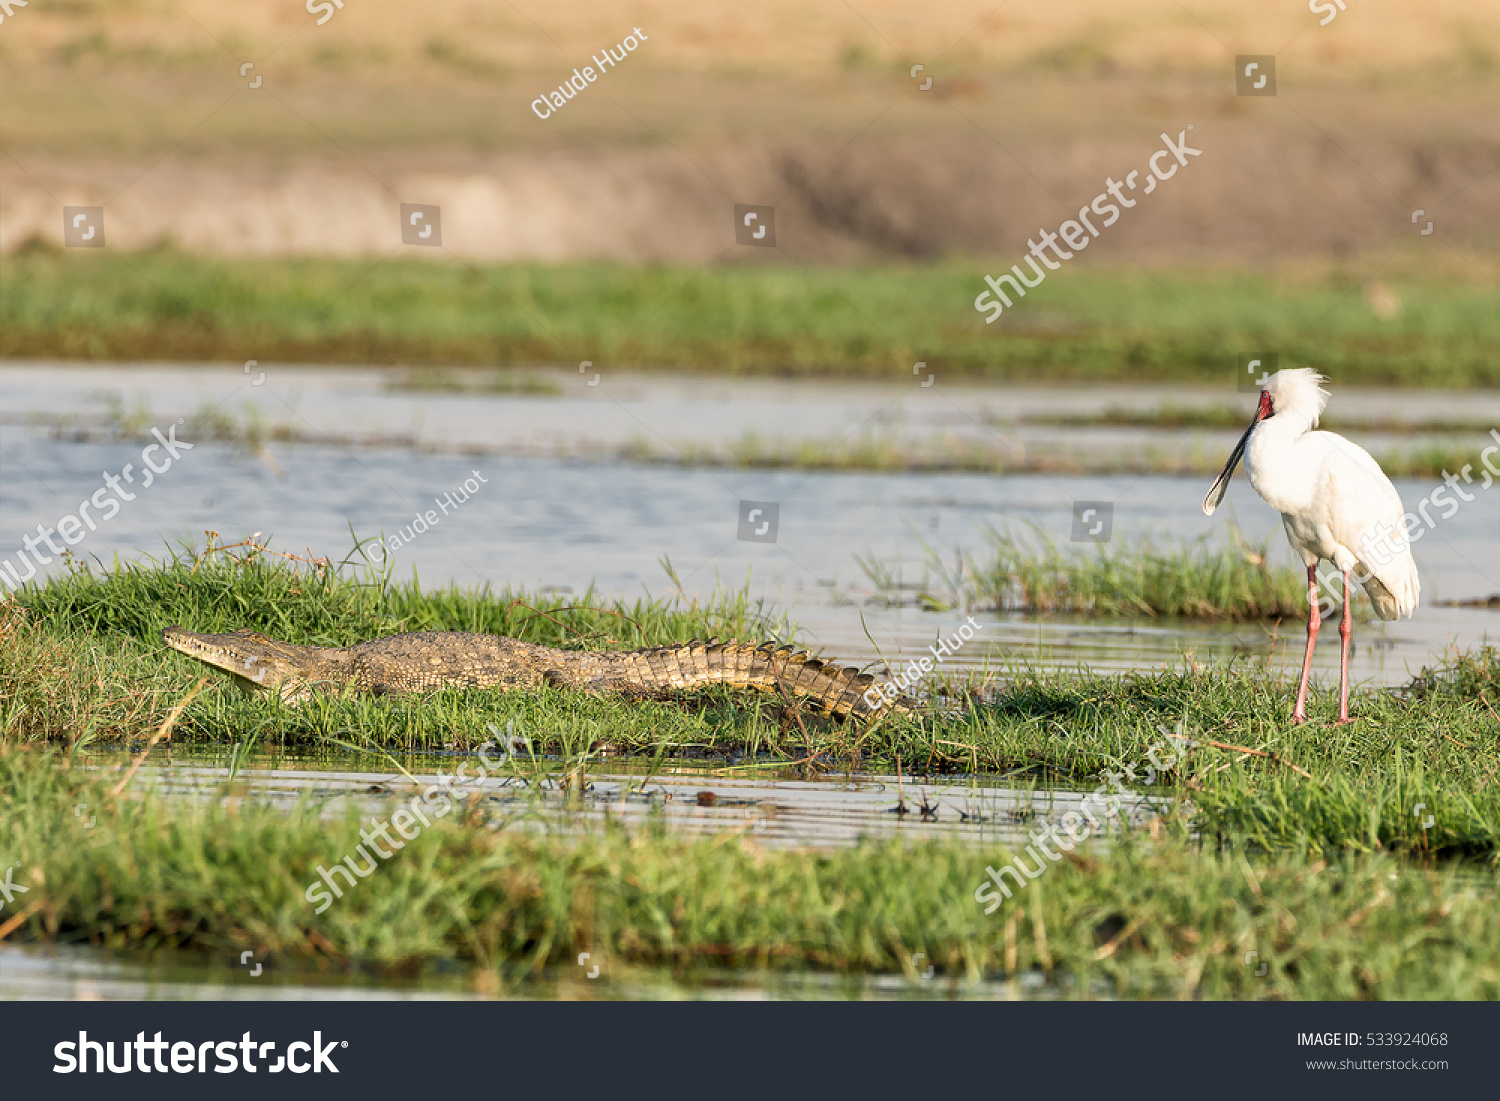 An African spoonbill (Platalea alba) and a Nile crocodile (Crocodylus niloticus) on the bank of the Chobe river which is the border between Namibia and Botswana.